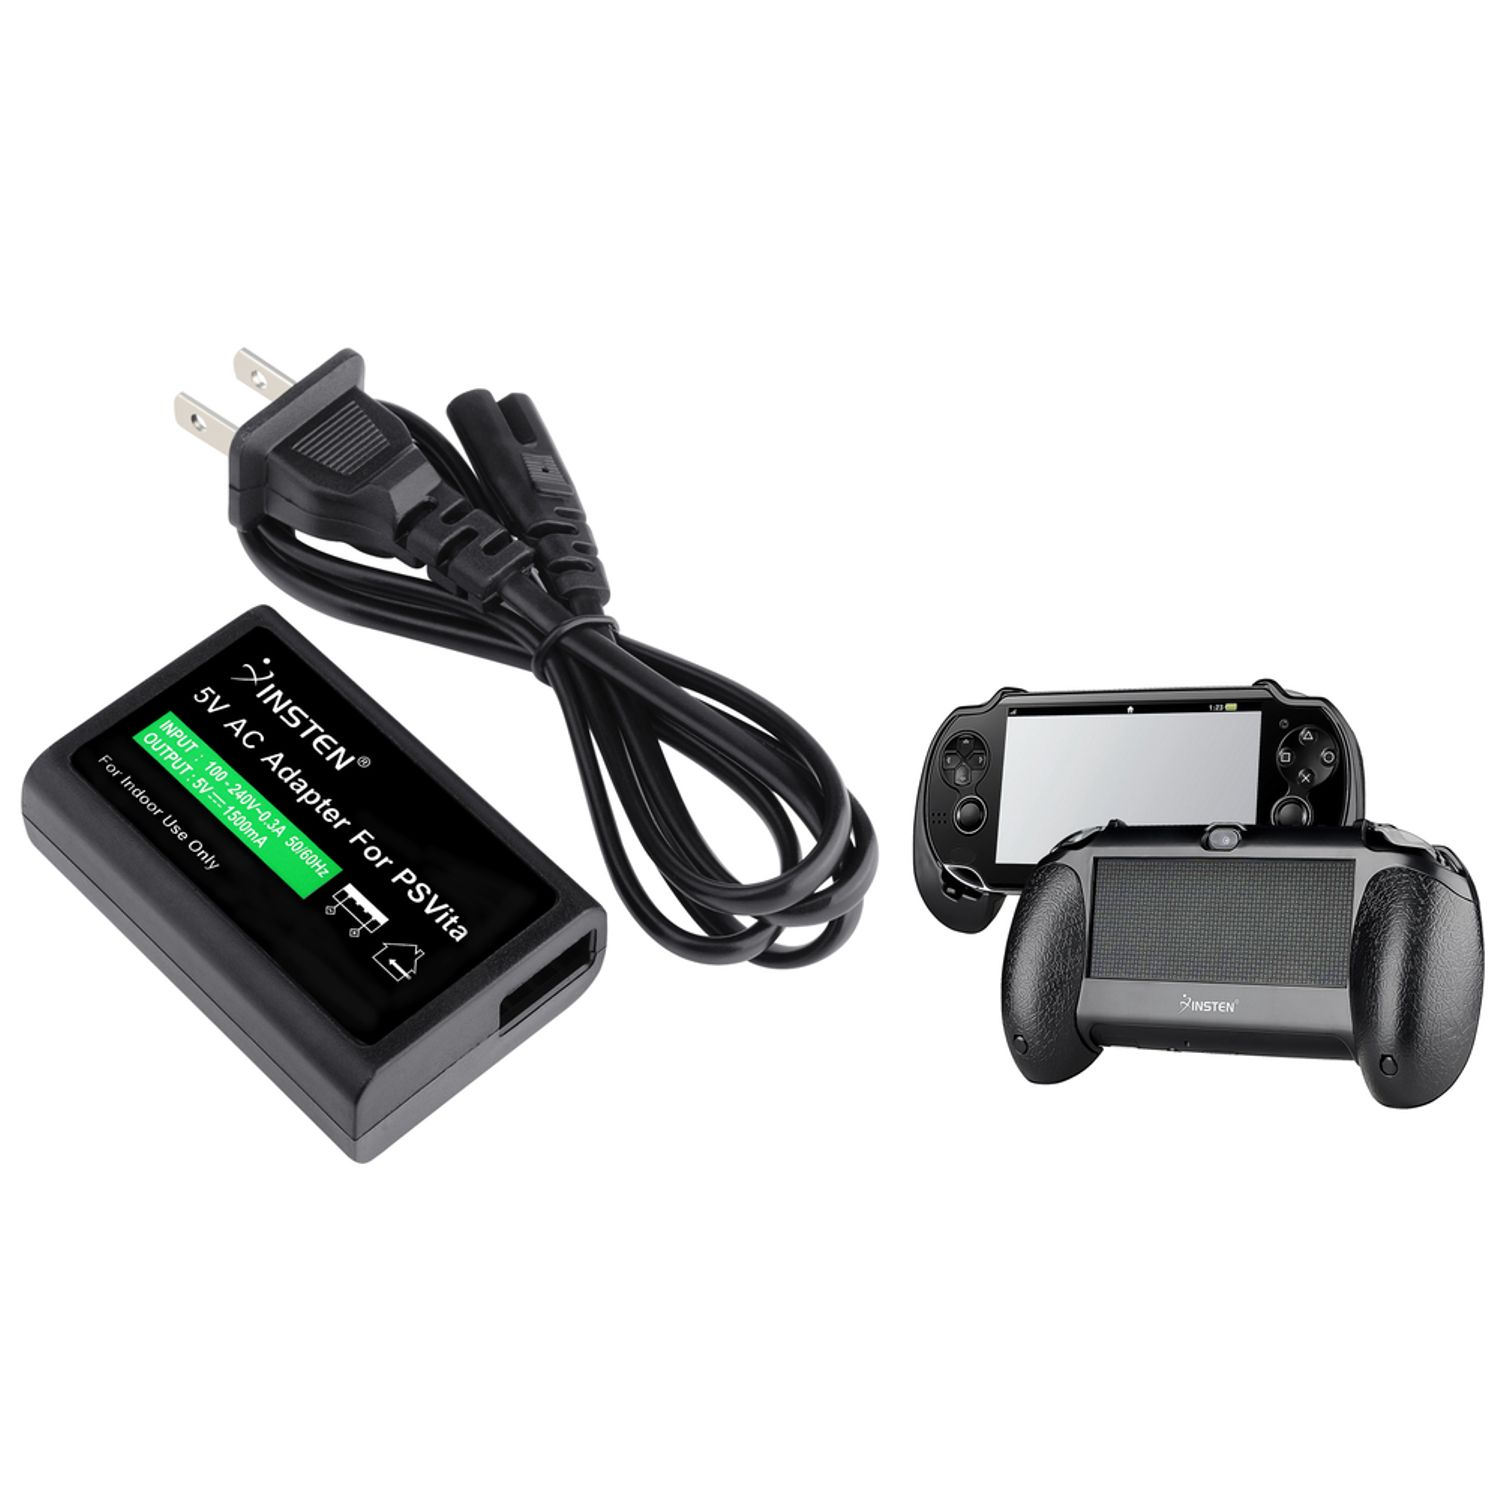 Insten US Plug AC Power Adapter+Black Hand Grip Holder For Sony Playstation PS Vita (2-in-1 Accessory Bundle)